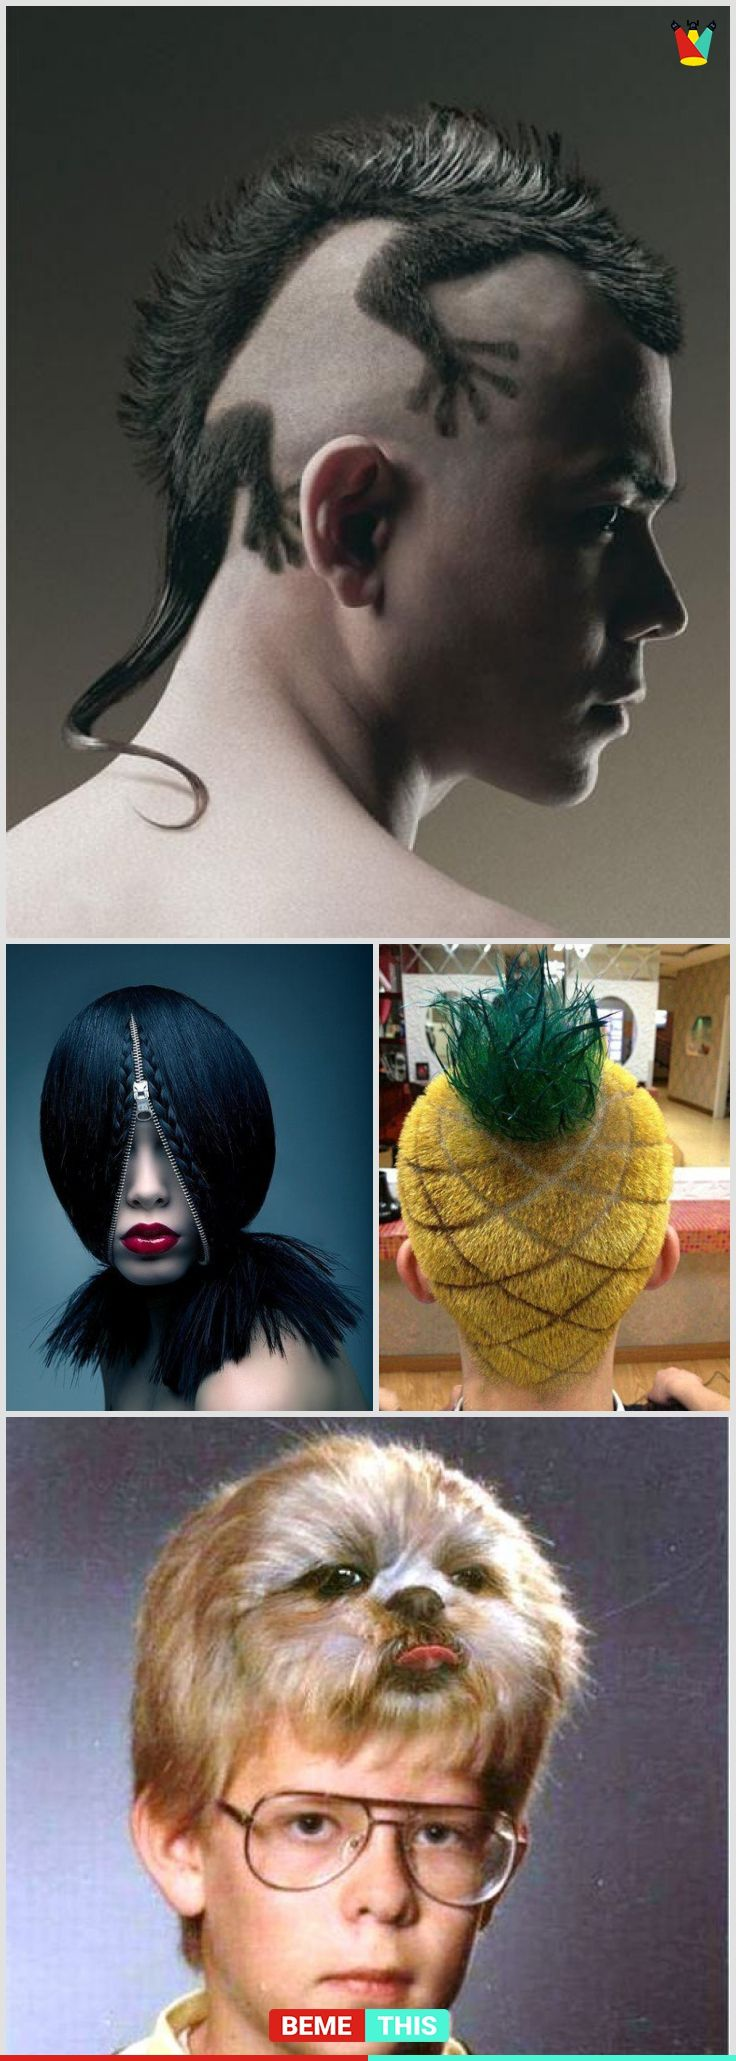 10+ of the Most Insane and Weird Hairstyles #funnypictures #hairstyles #weird #hairs